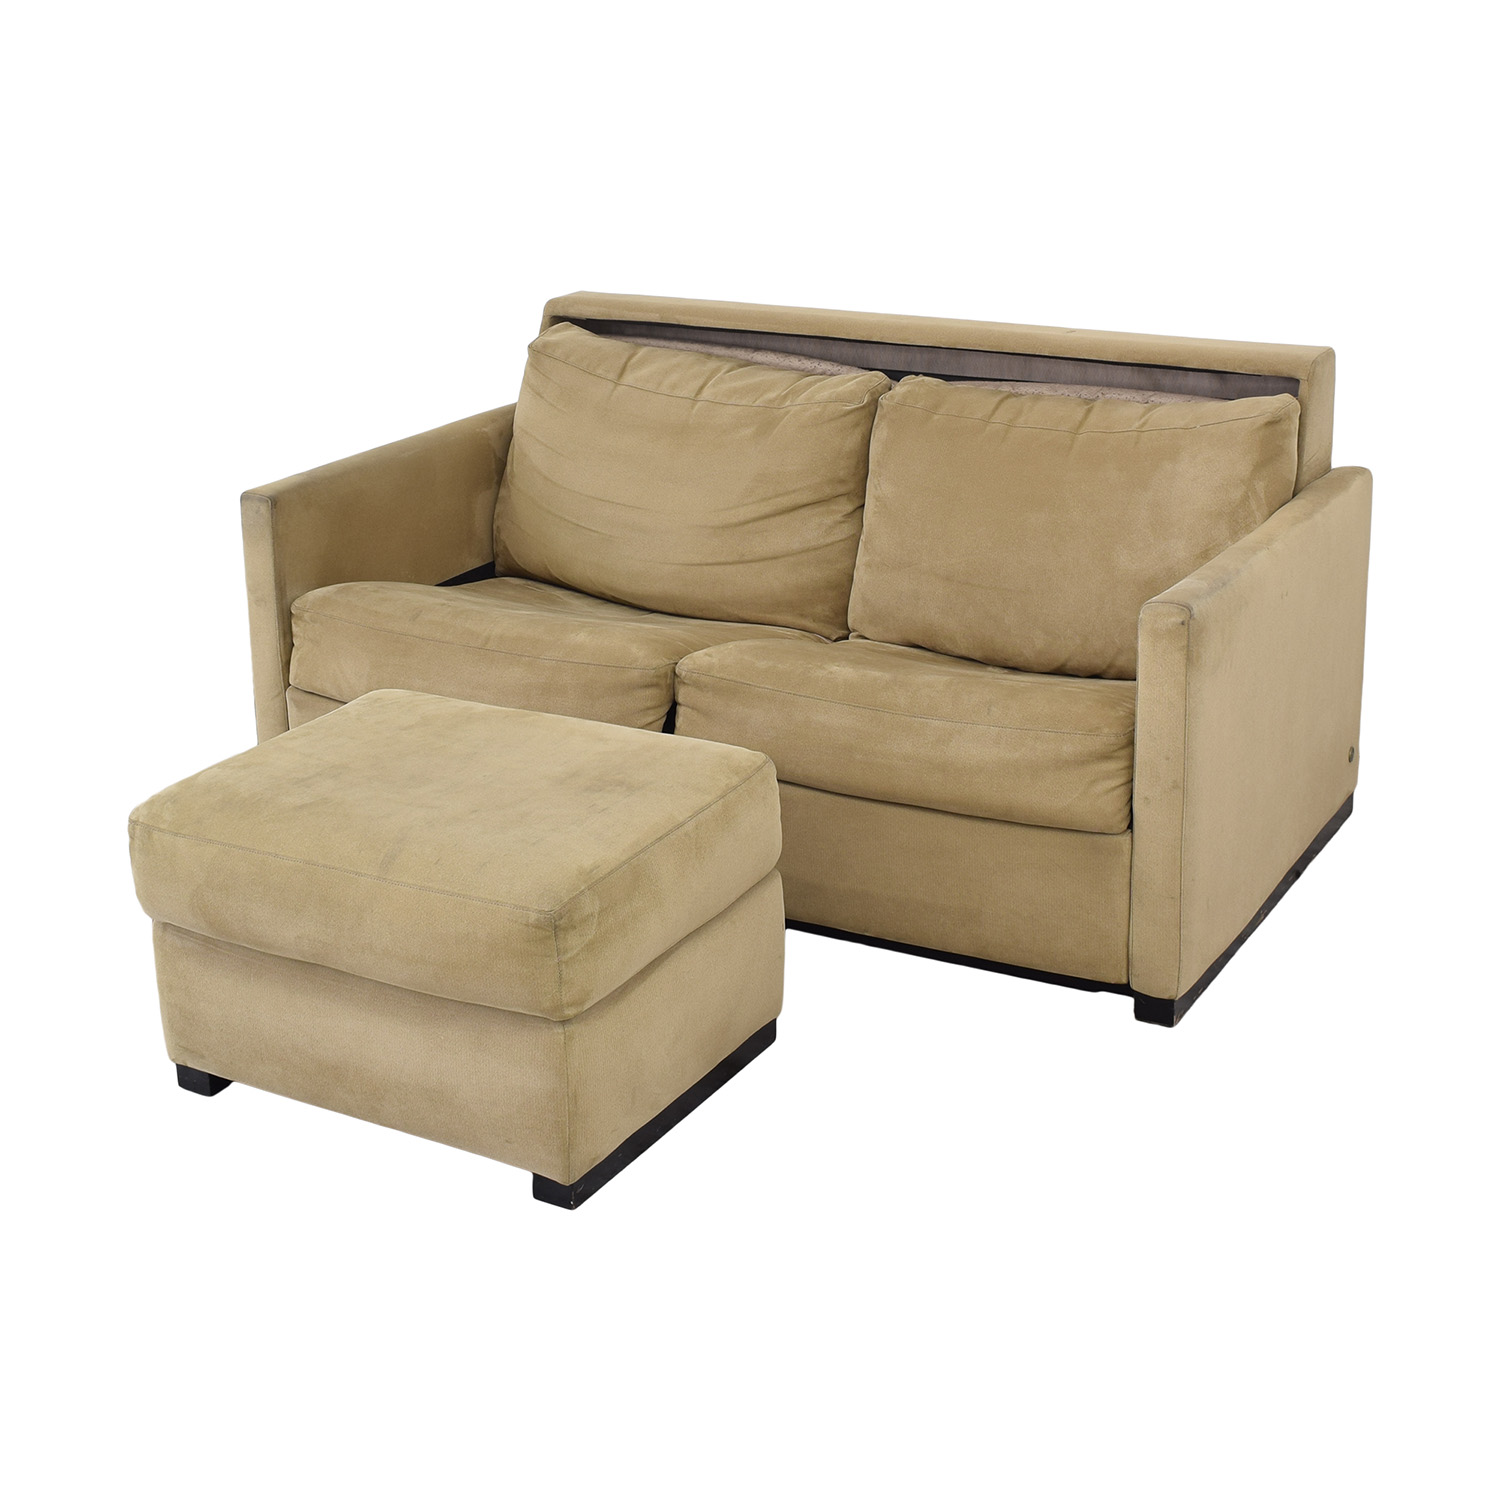 American Leather American Leather Patterson Sleeper Sofa with Ottoman Sofa Beds